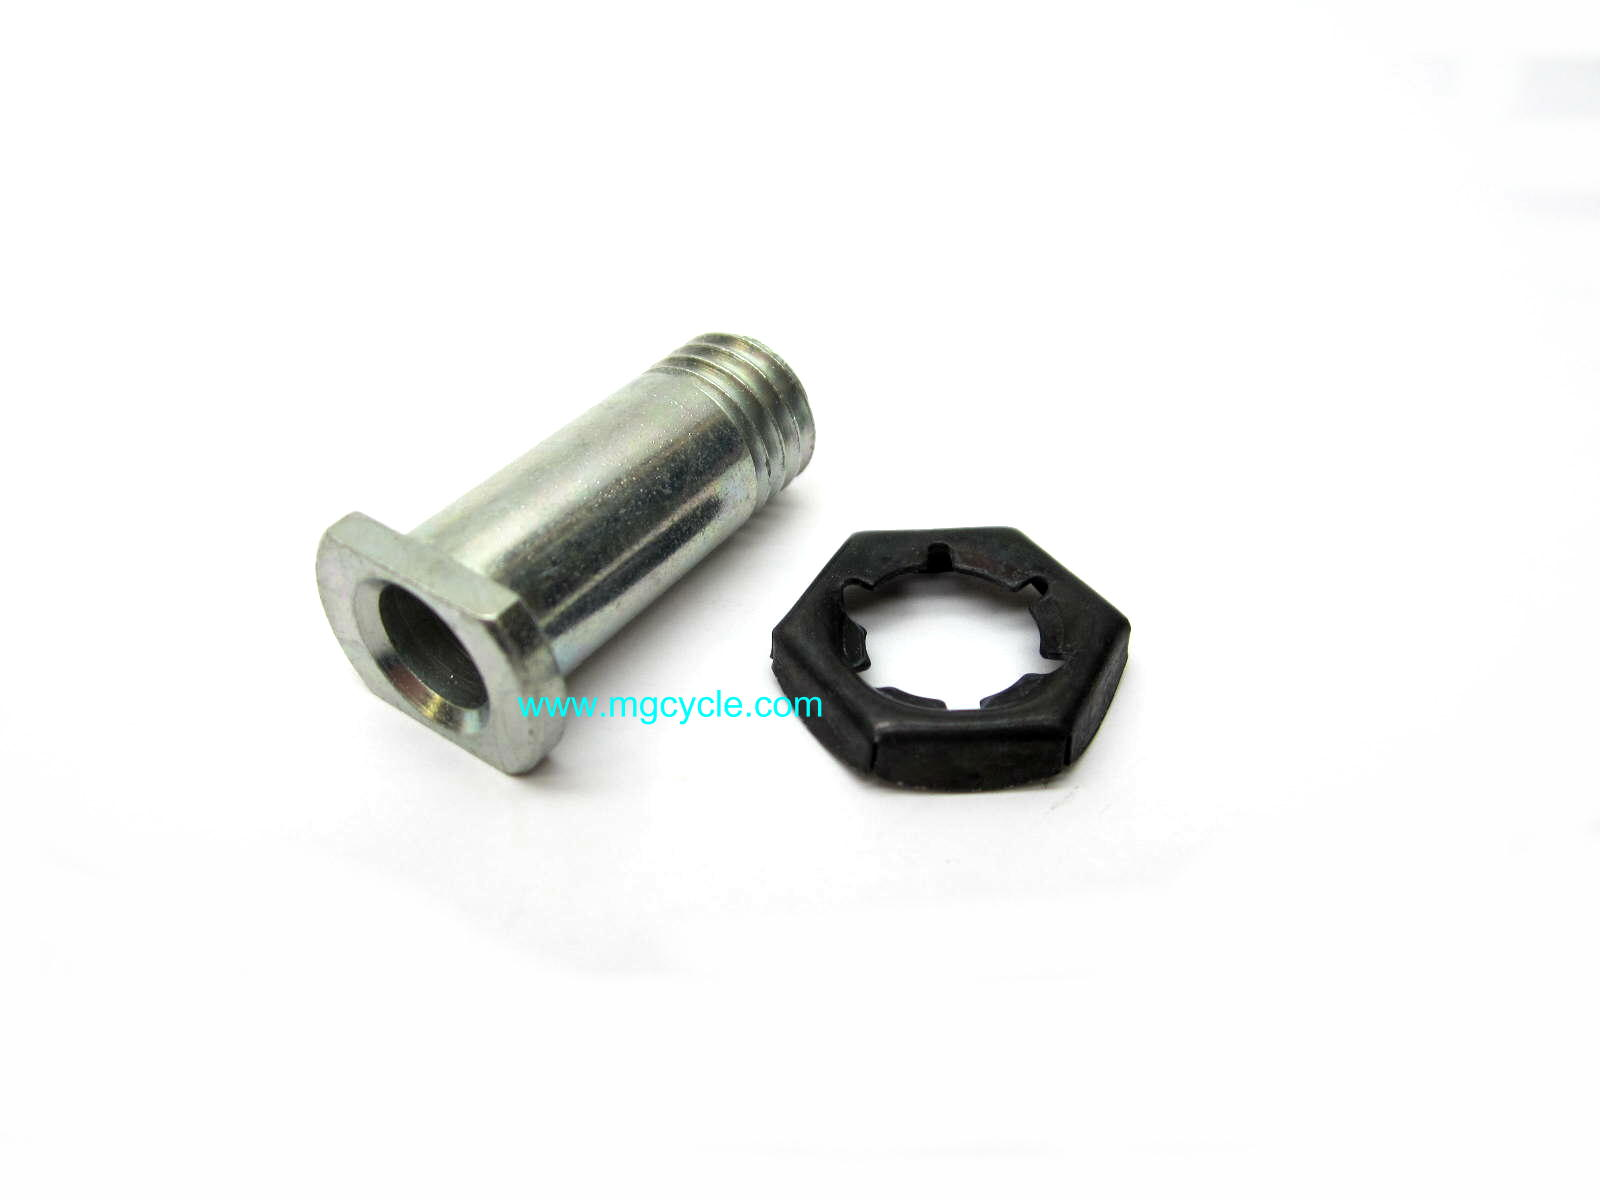 Brake pivot pin and stamped nut, hollow pivot GU27604815